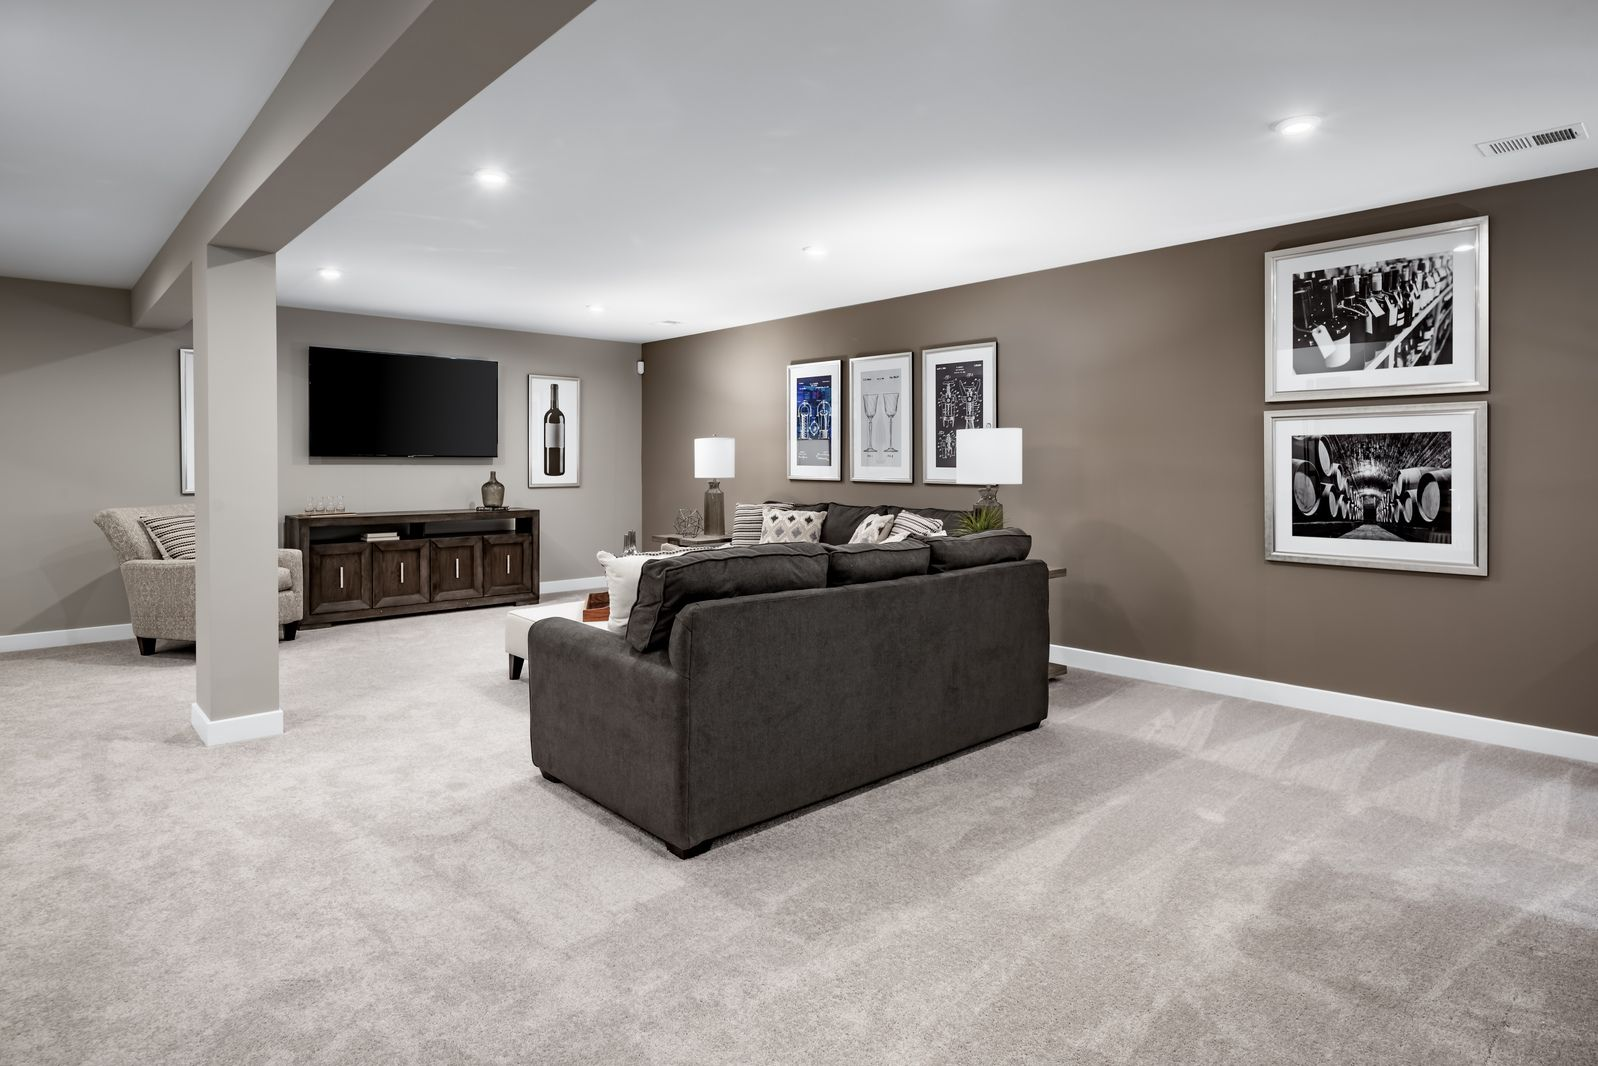 Living Area featured in the Alberti By Ryan Homes in Warren County, NJ